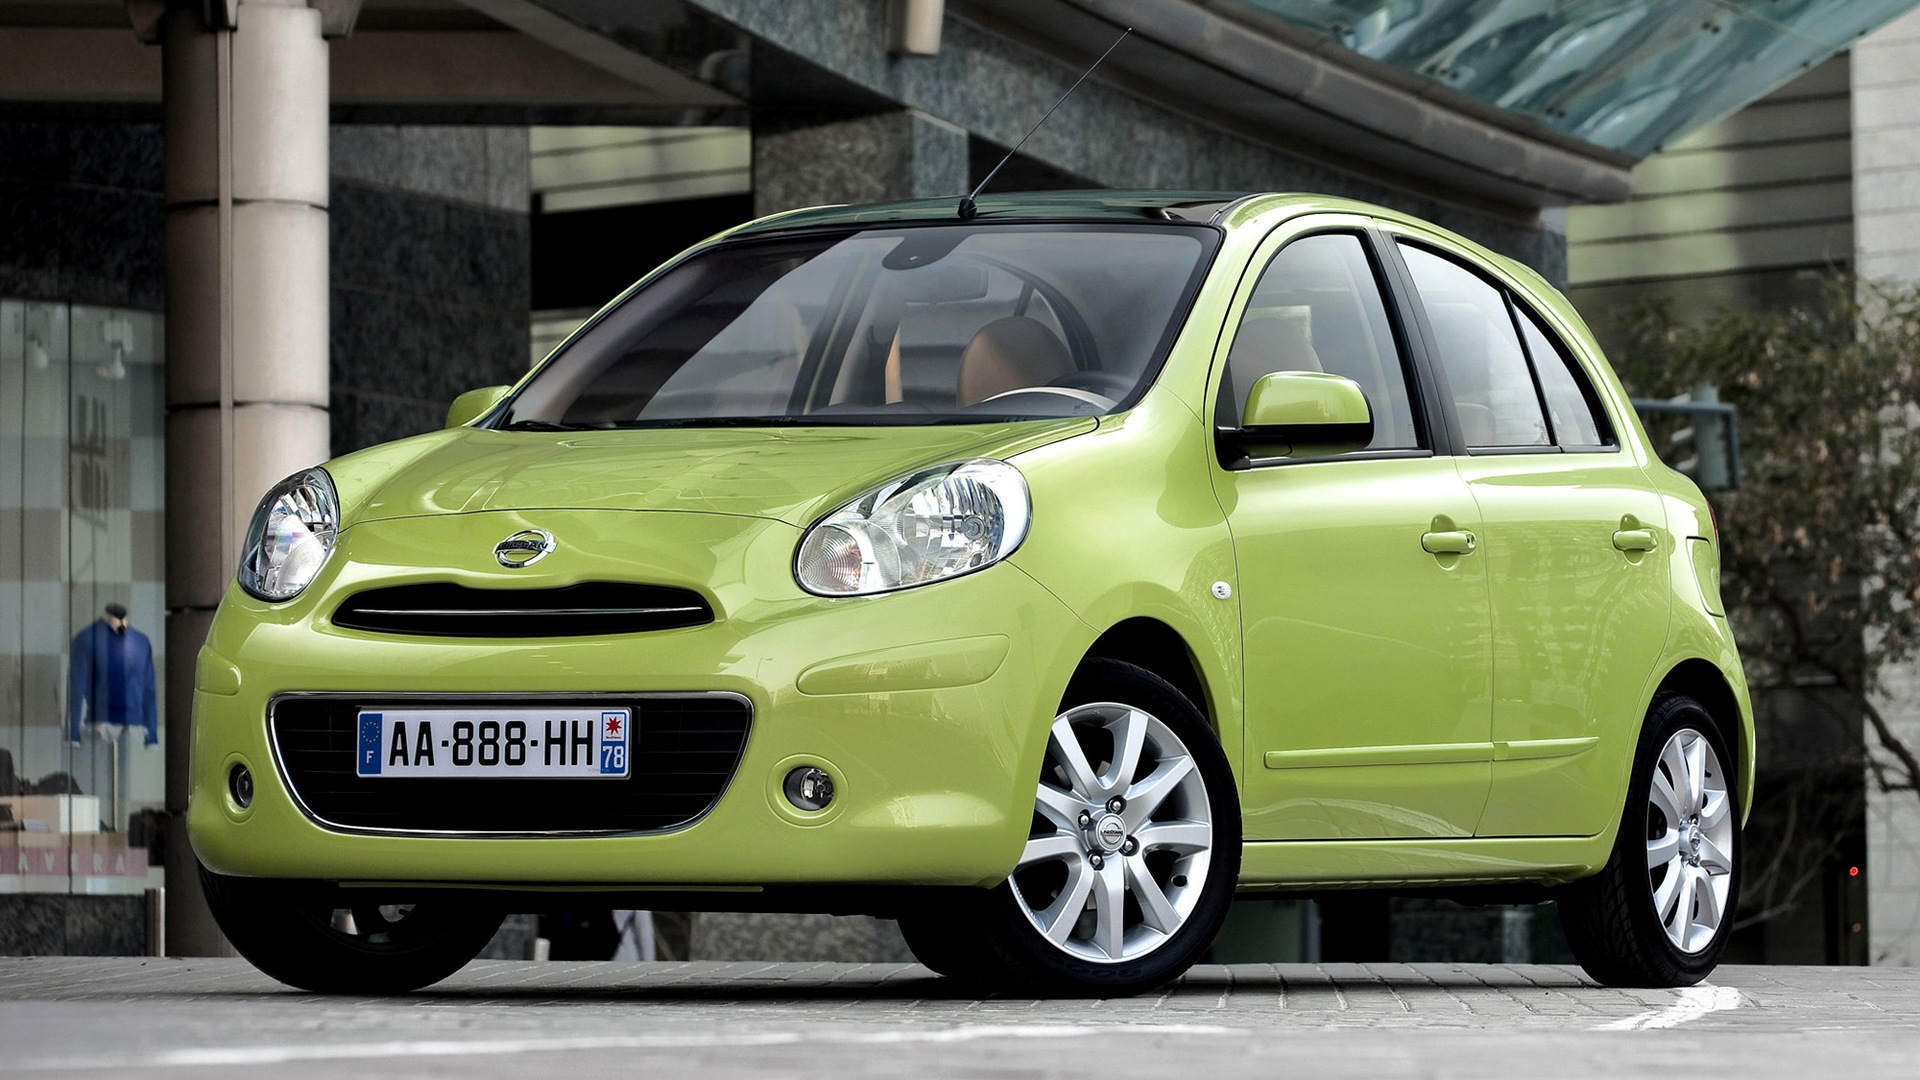 2010 nissan micra wallpapers and hd images car pixel. Black Bedroom Furniture Sets. Home Design Ideas